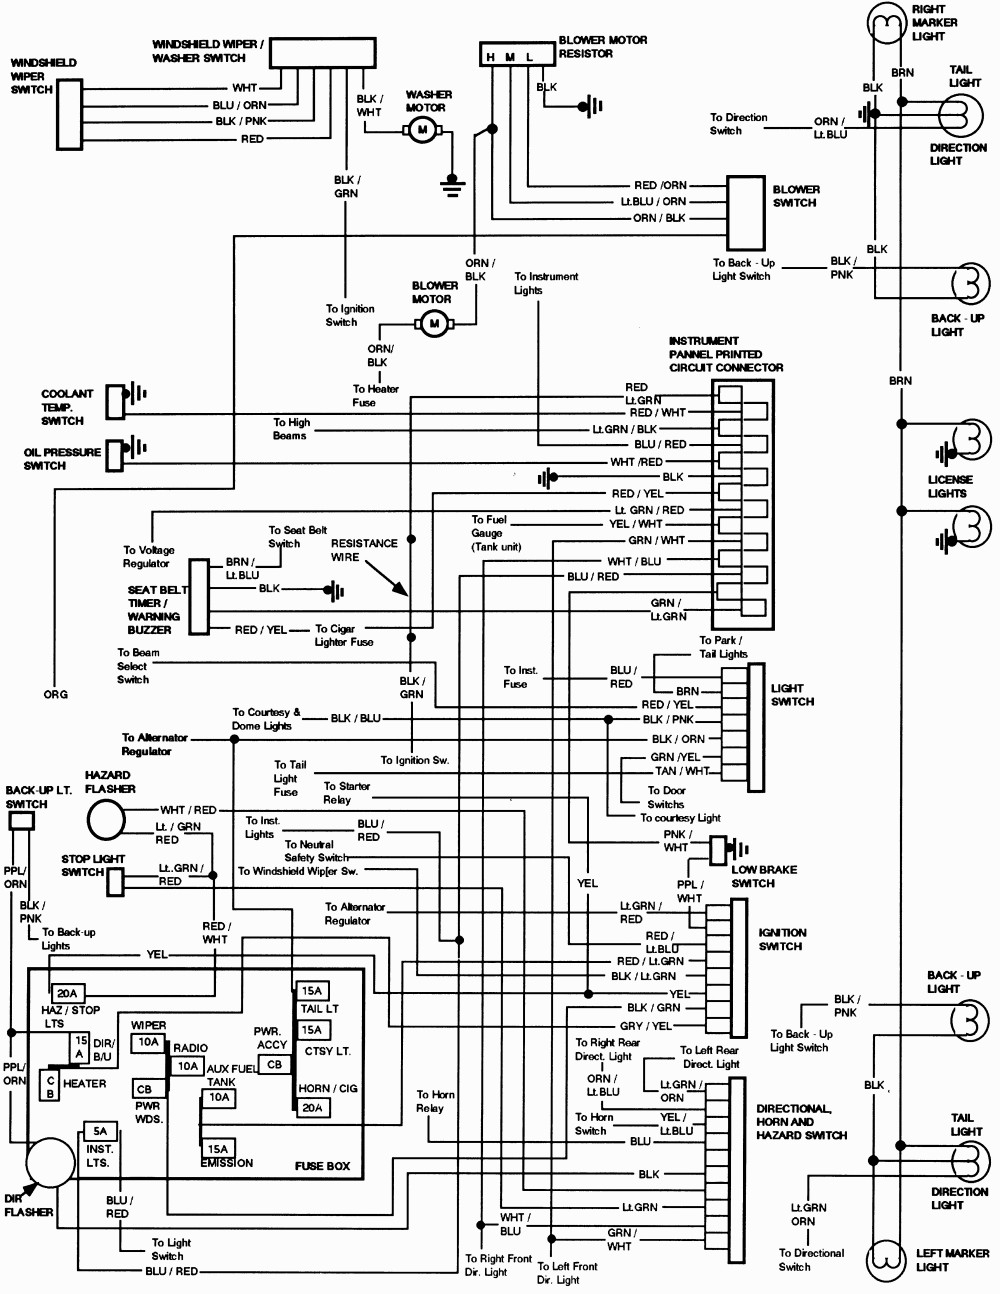 medium resolution of get 95 ford f150 ignition wiring diagram download 1990 ford f350 ignition wiring diagram 95 ford